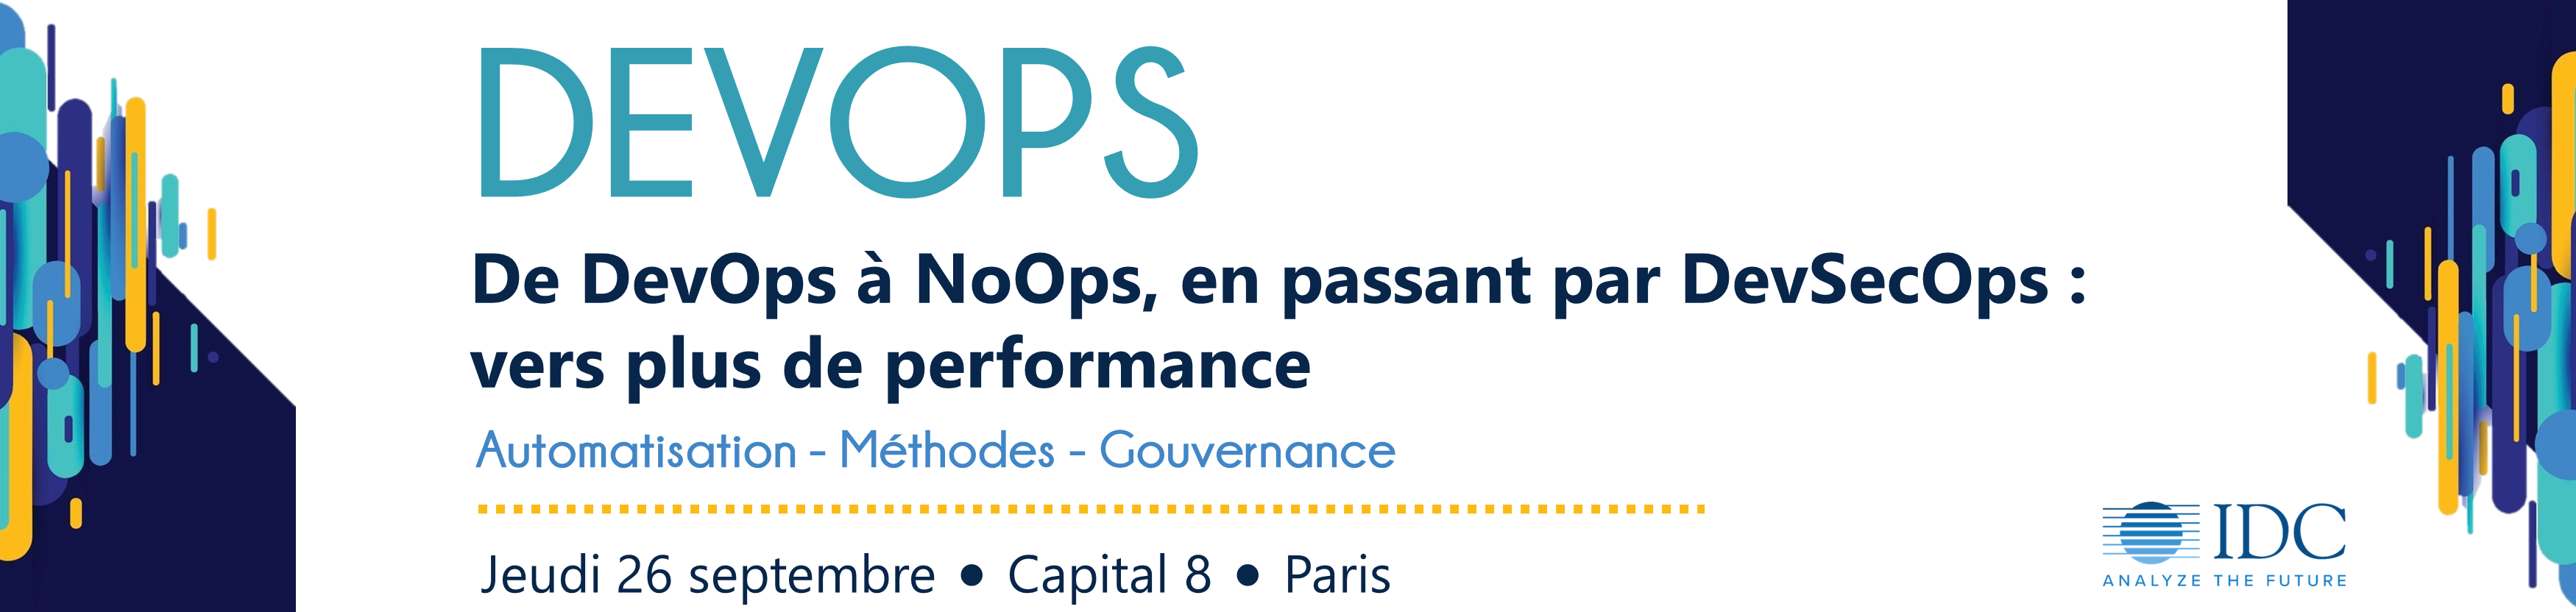 Conference IDC - Devops - 26 Septembre 2019